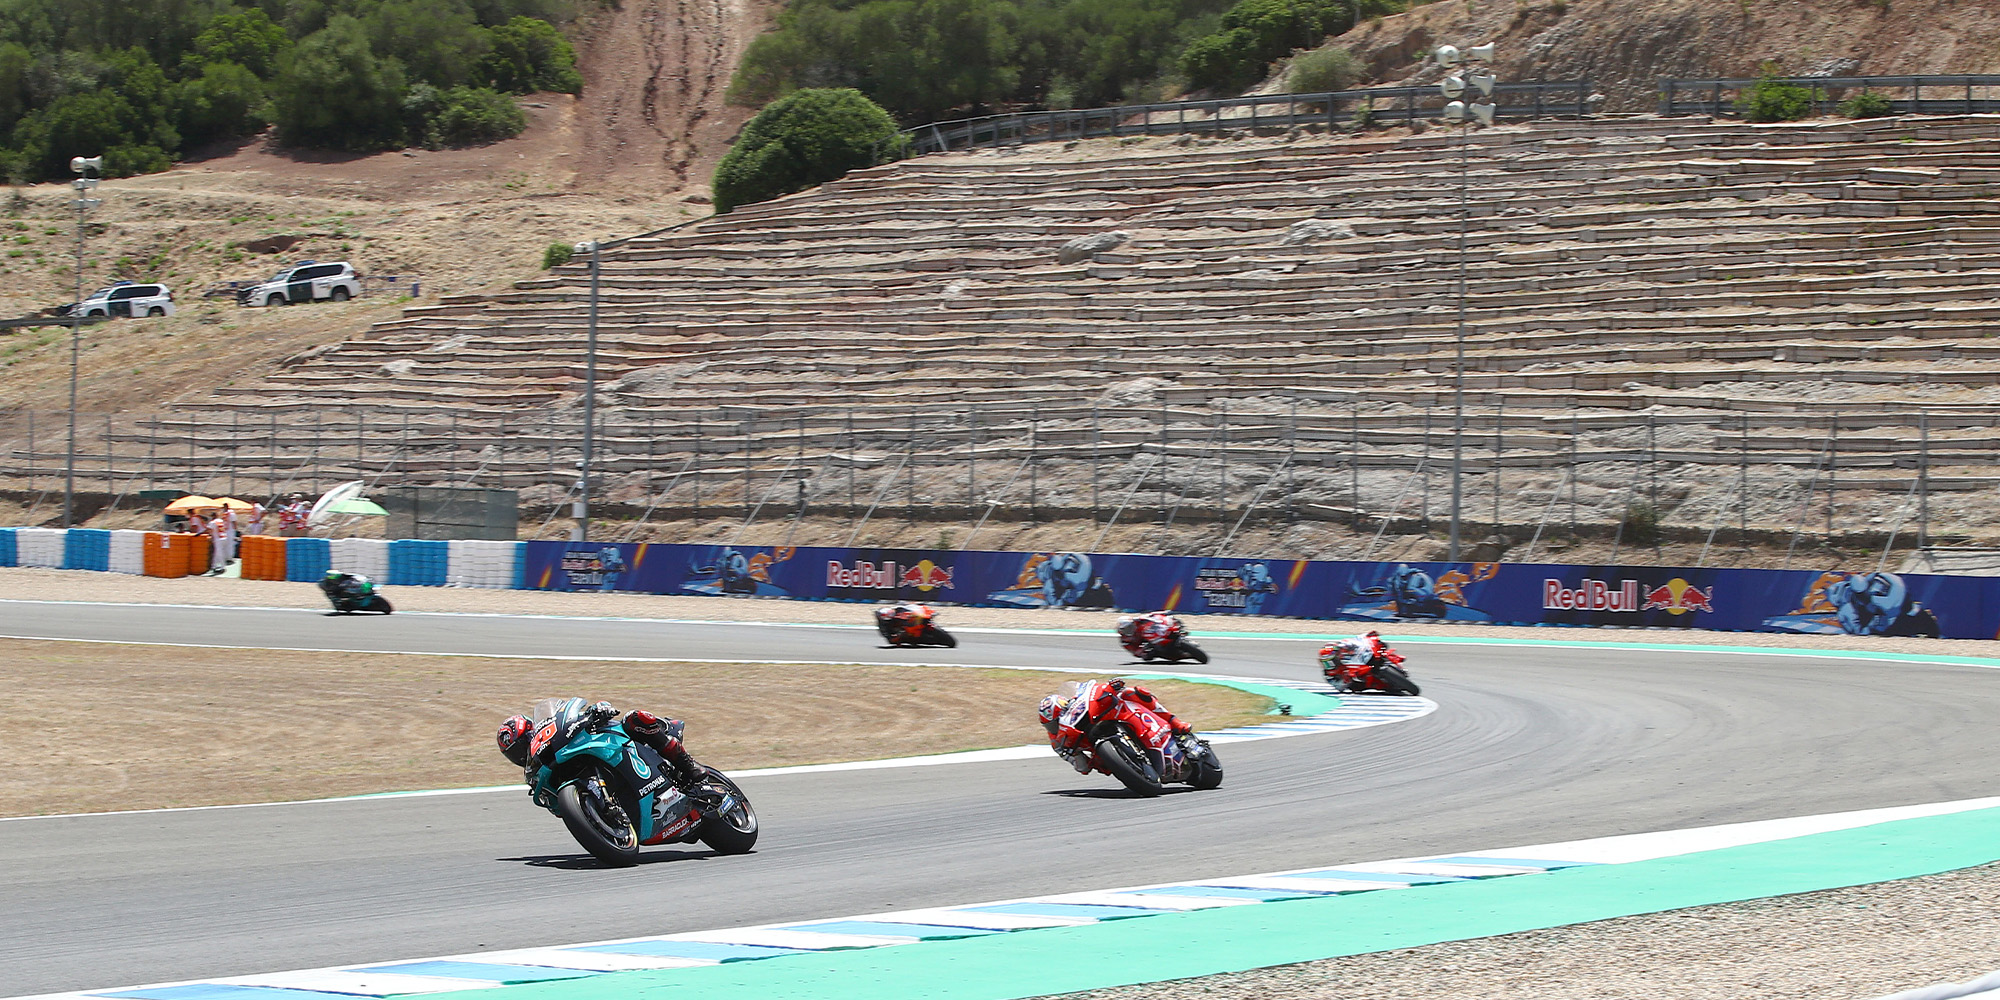 Maverick Vinales leads in the early stages of the 2020 MotoGP Spanish Grand Prix at Jerez